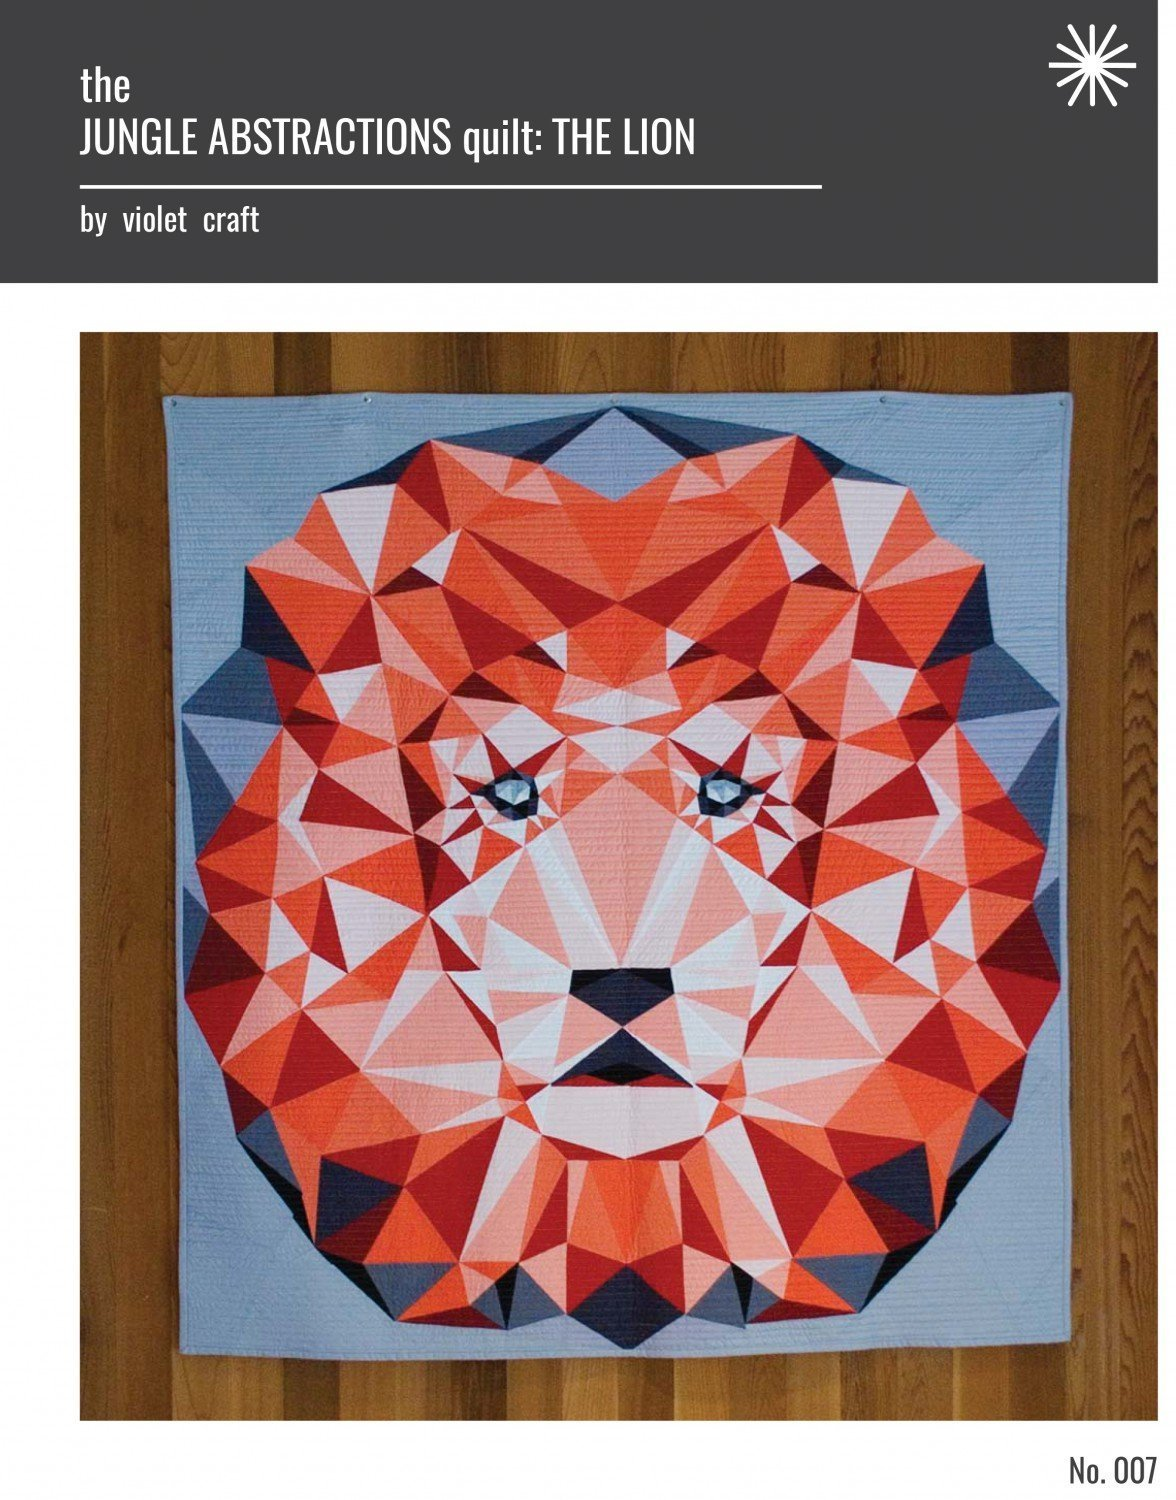 Lion Jungle Abstractions Quilt Violet Craft